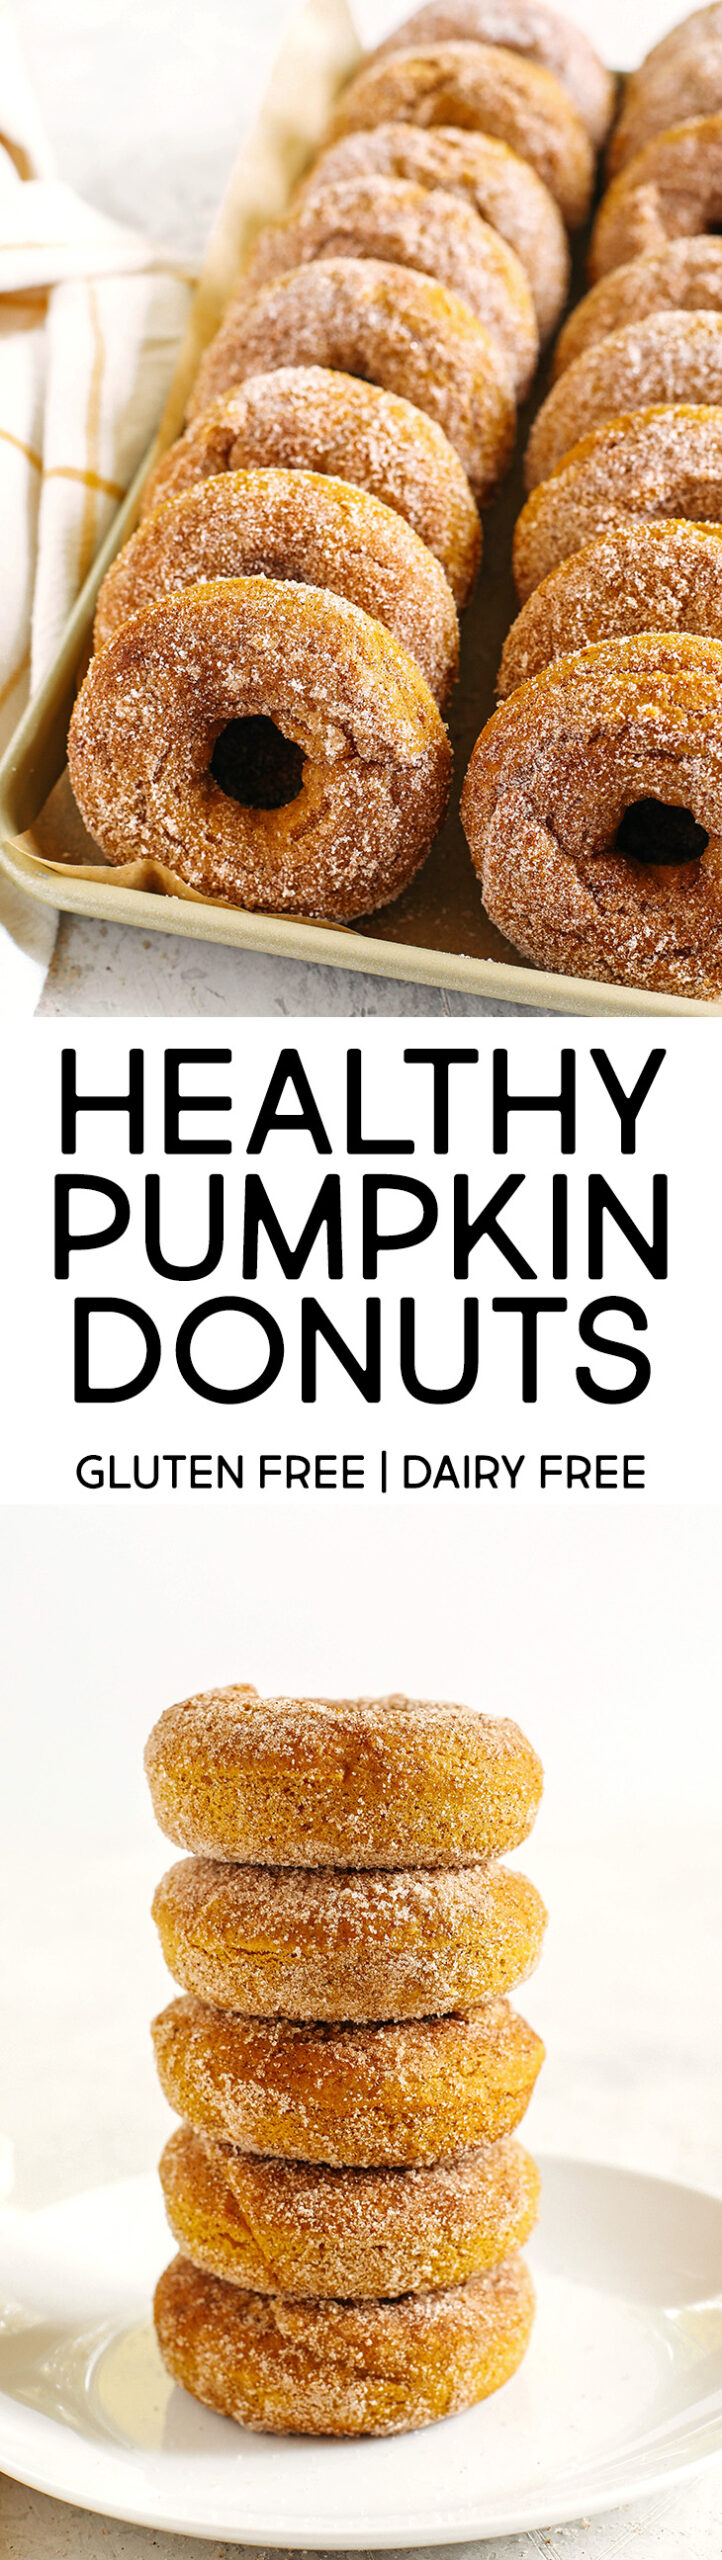 Delicious Gluten-Free Pumpkin Spice Donuts that are soft, lightly sweetened with maple syrup and baked, not fried, for the perfect fall treat! Loaded with warm spices and coated with cinnamon and sugar!